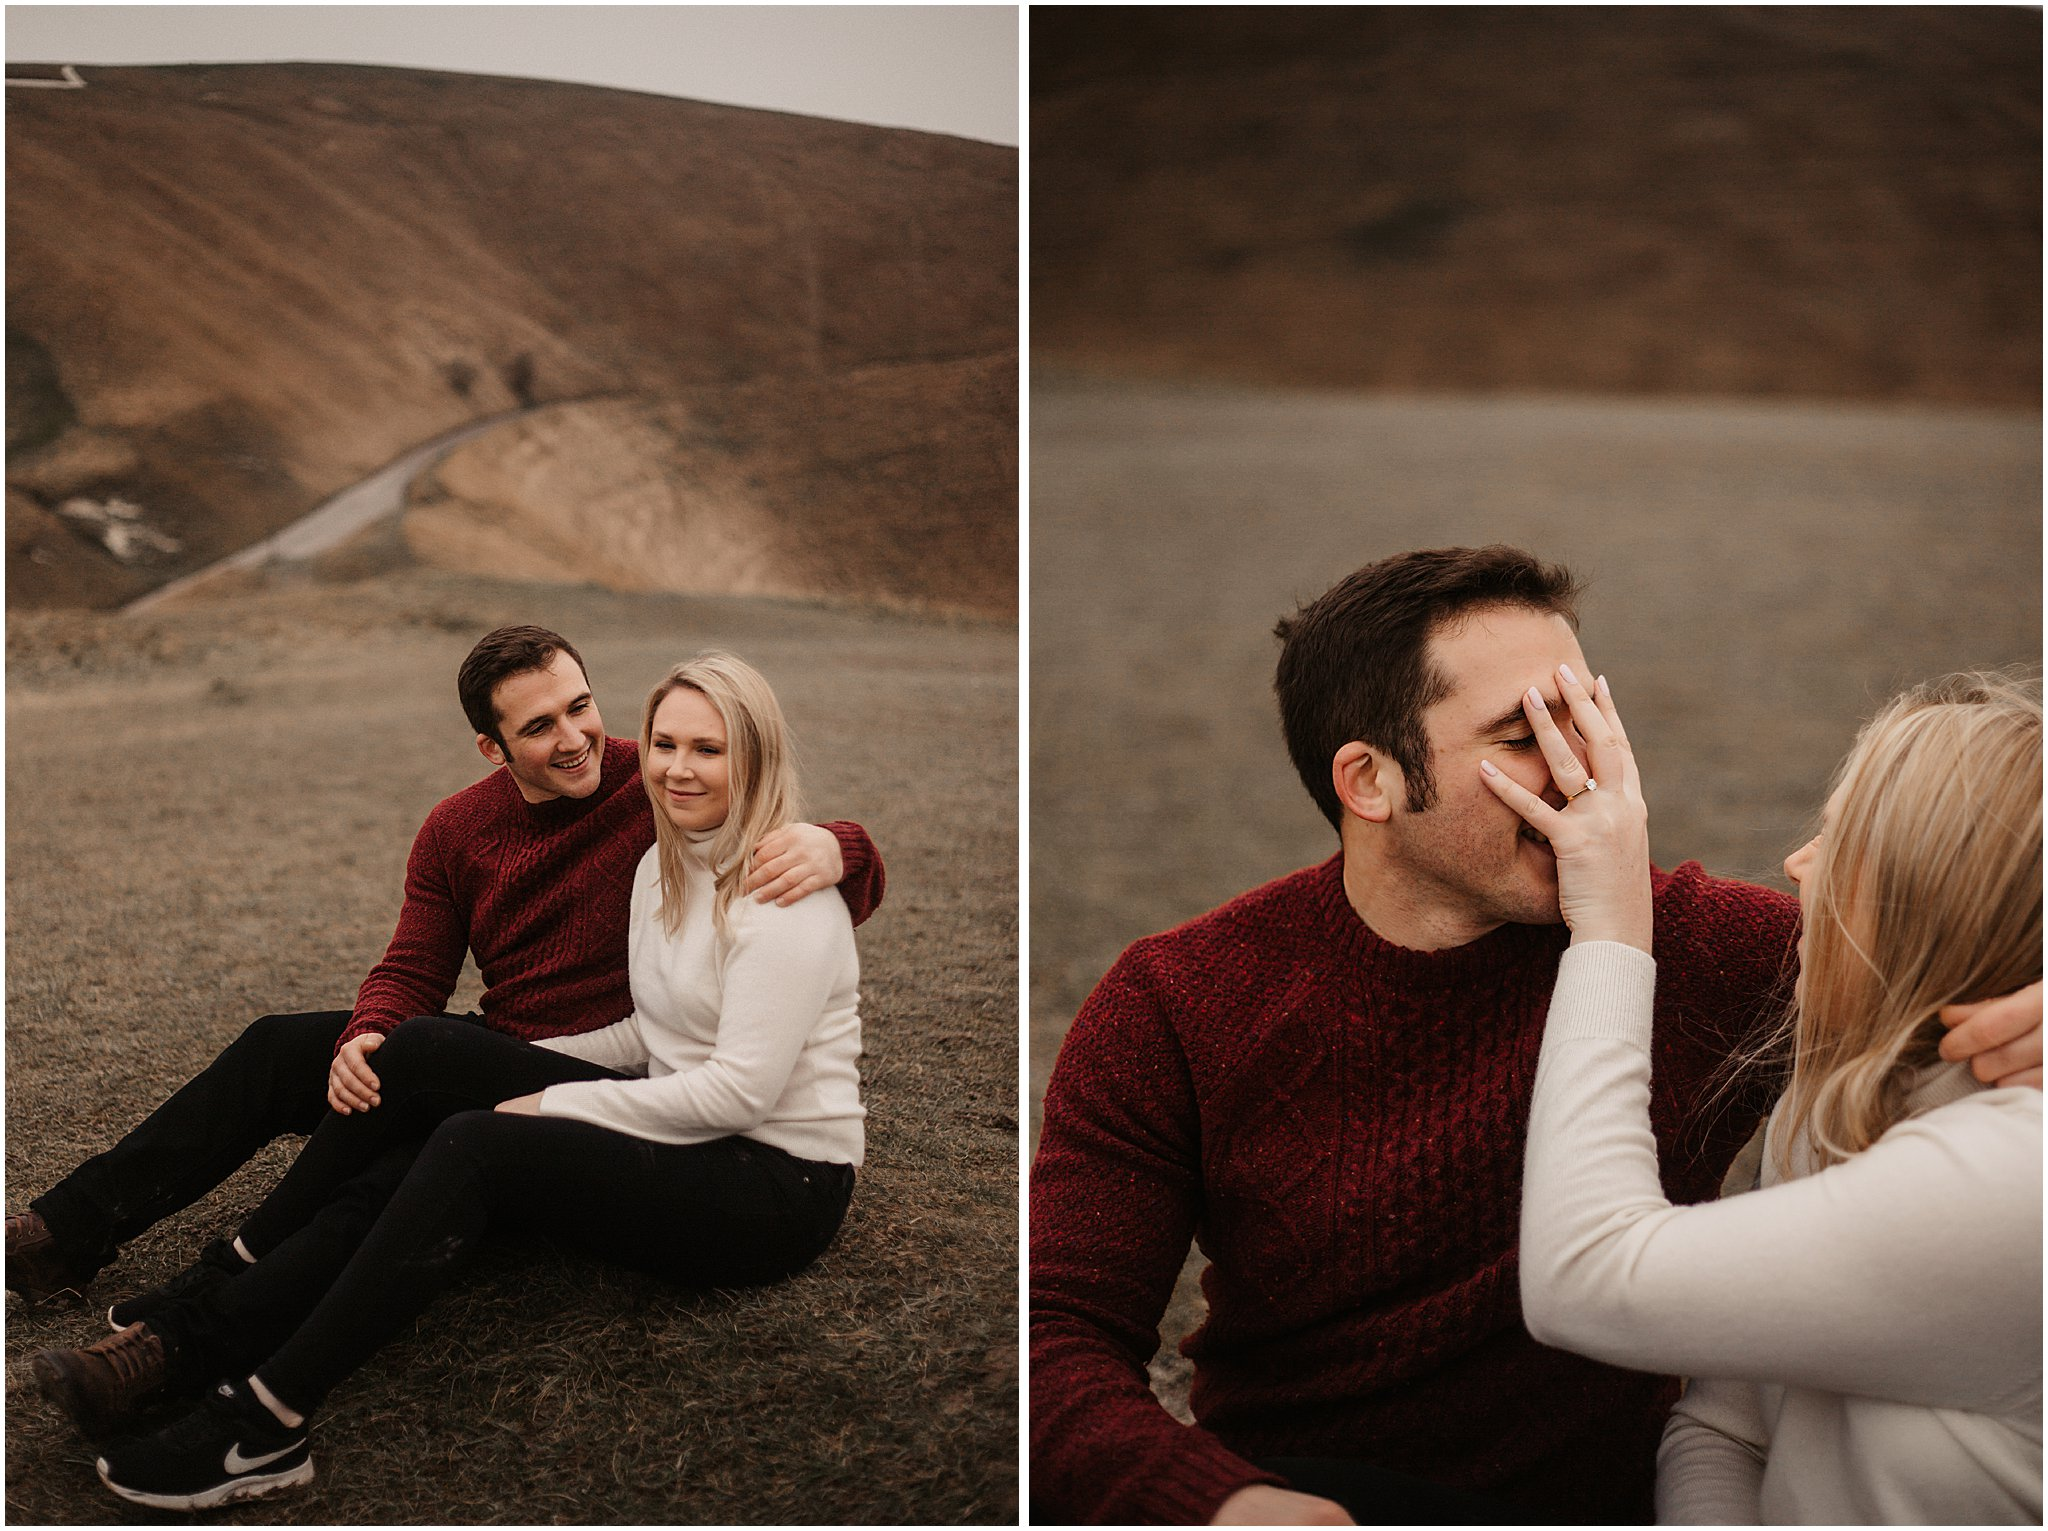 Mike & Charley_s Winter Engagement Shoot Wiltshire-104.jpg